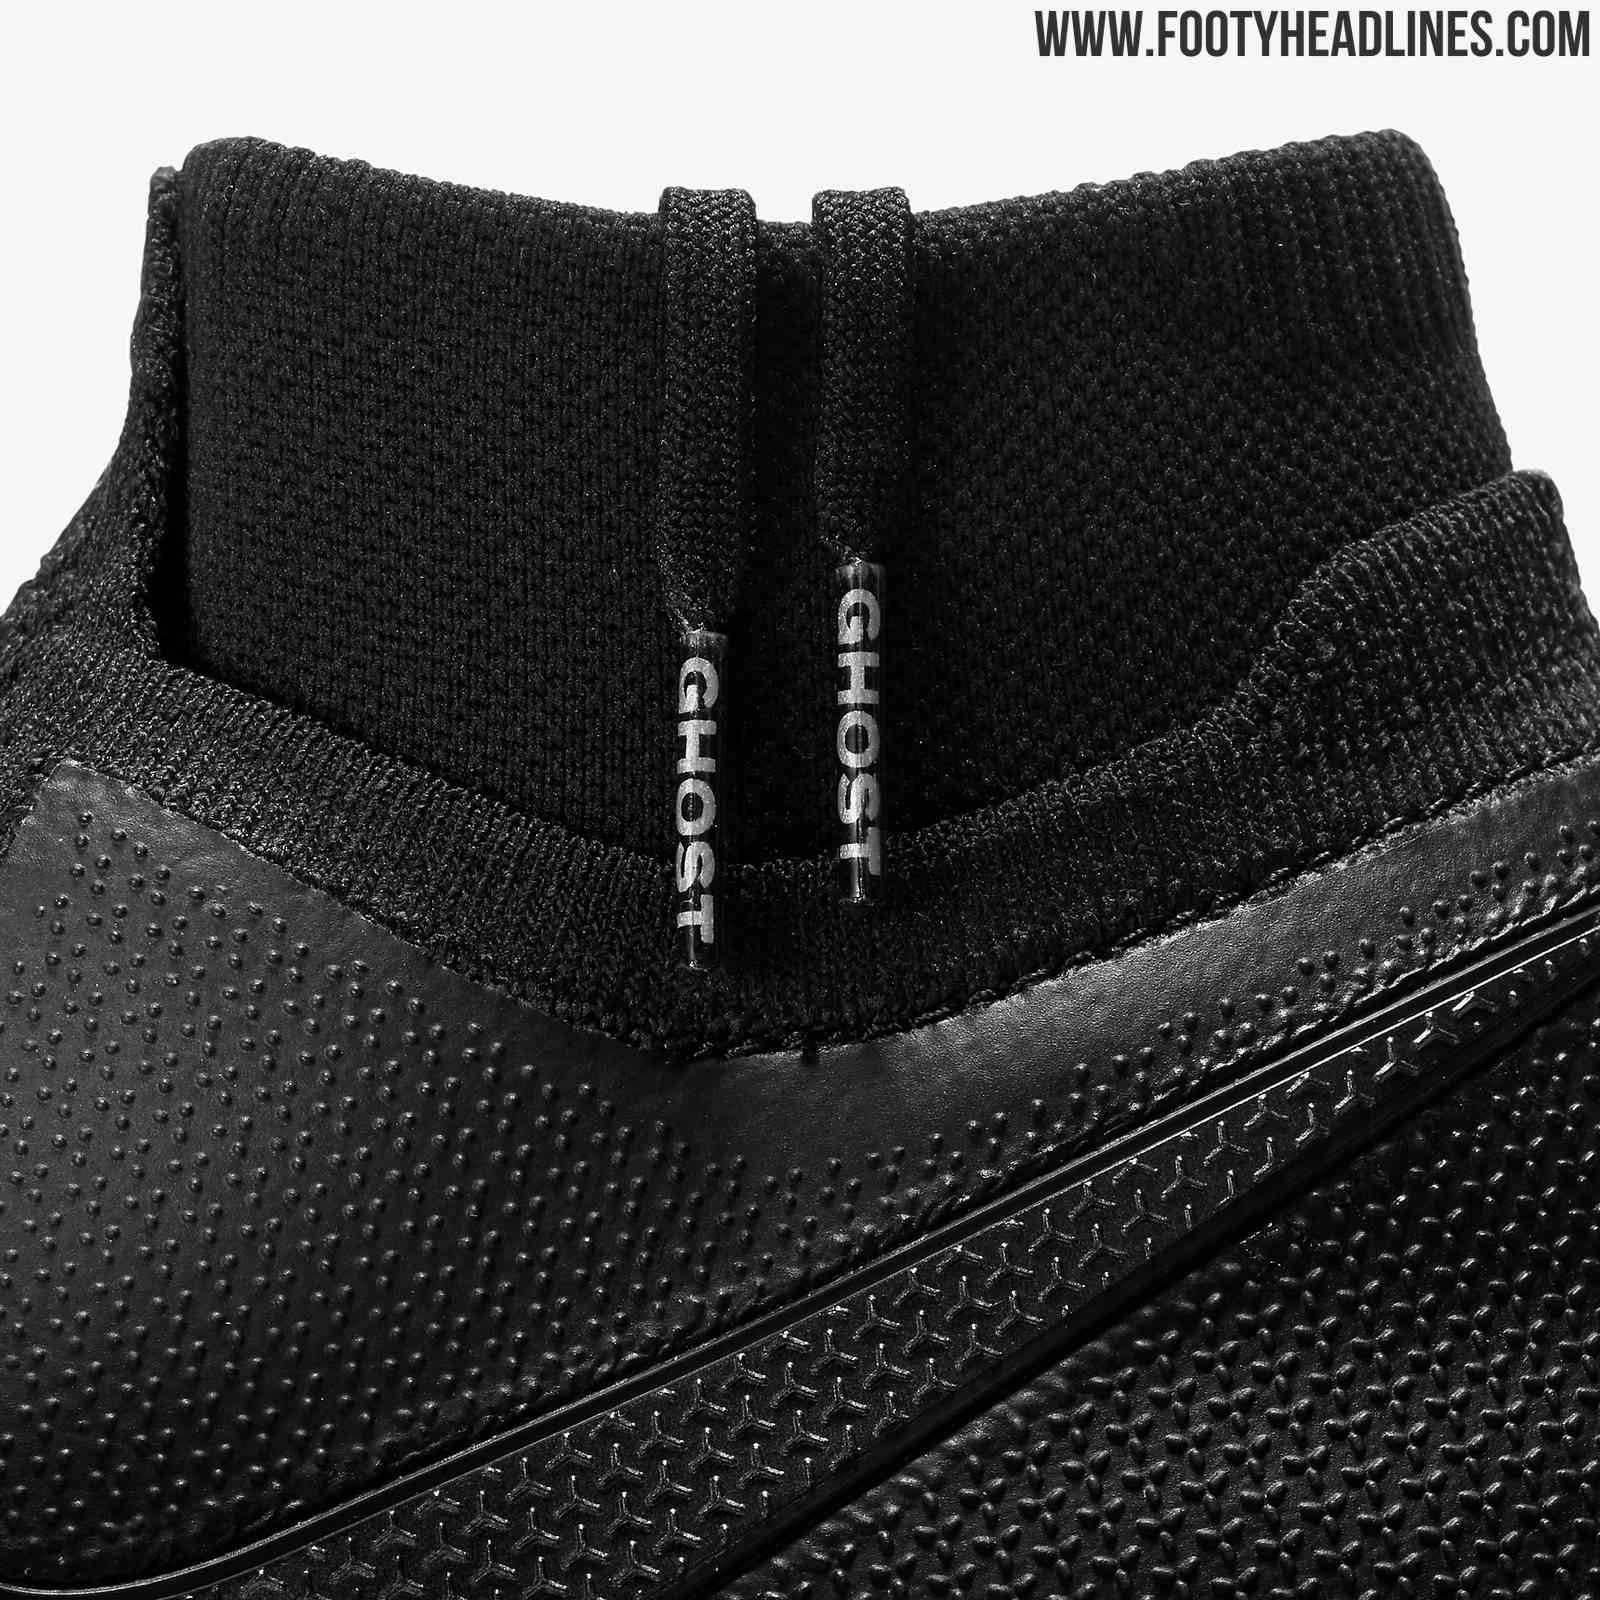 bc3ad8818 Do you like the blackout Nike Phantom VSN Phantom 2018 football boot of the  new Nike 2018-2019 Stealth Ops pack  Drop us a line below and see all  upcoming ...